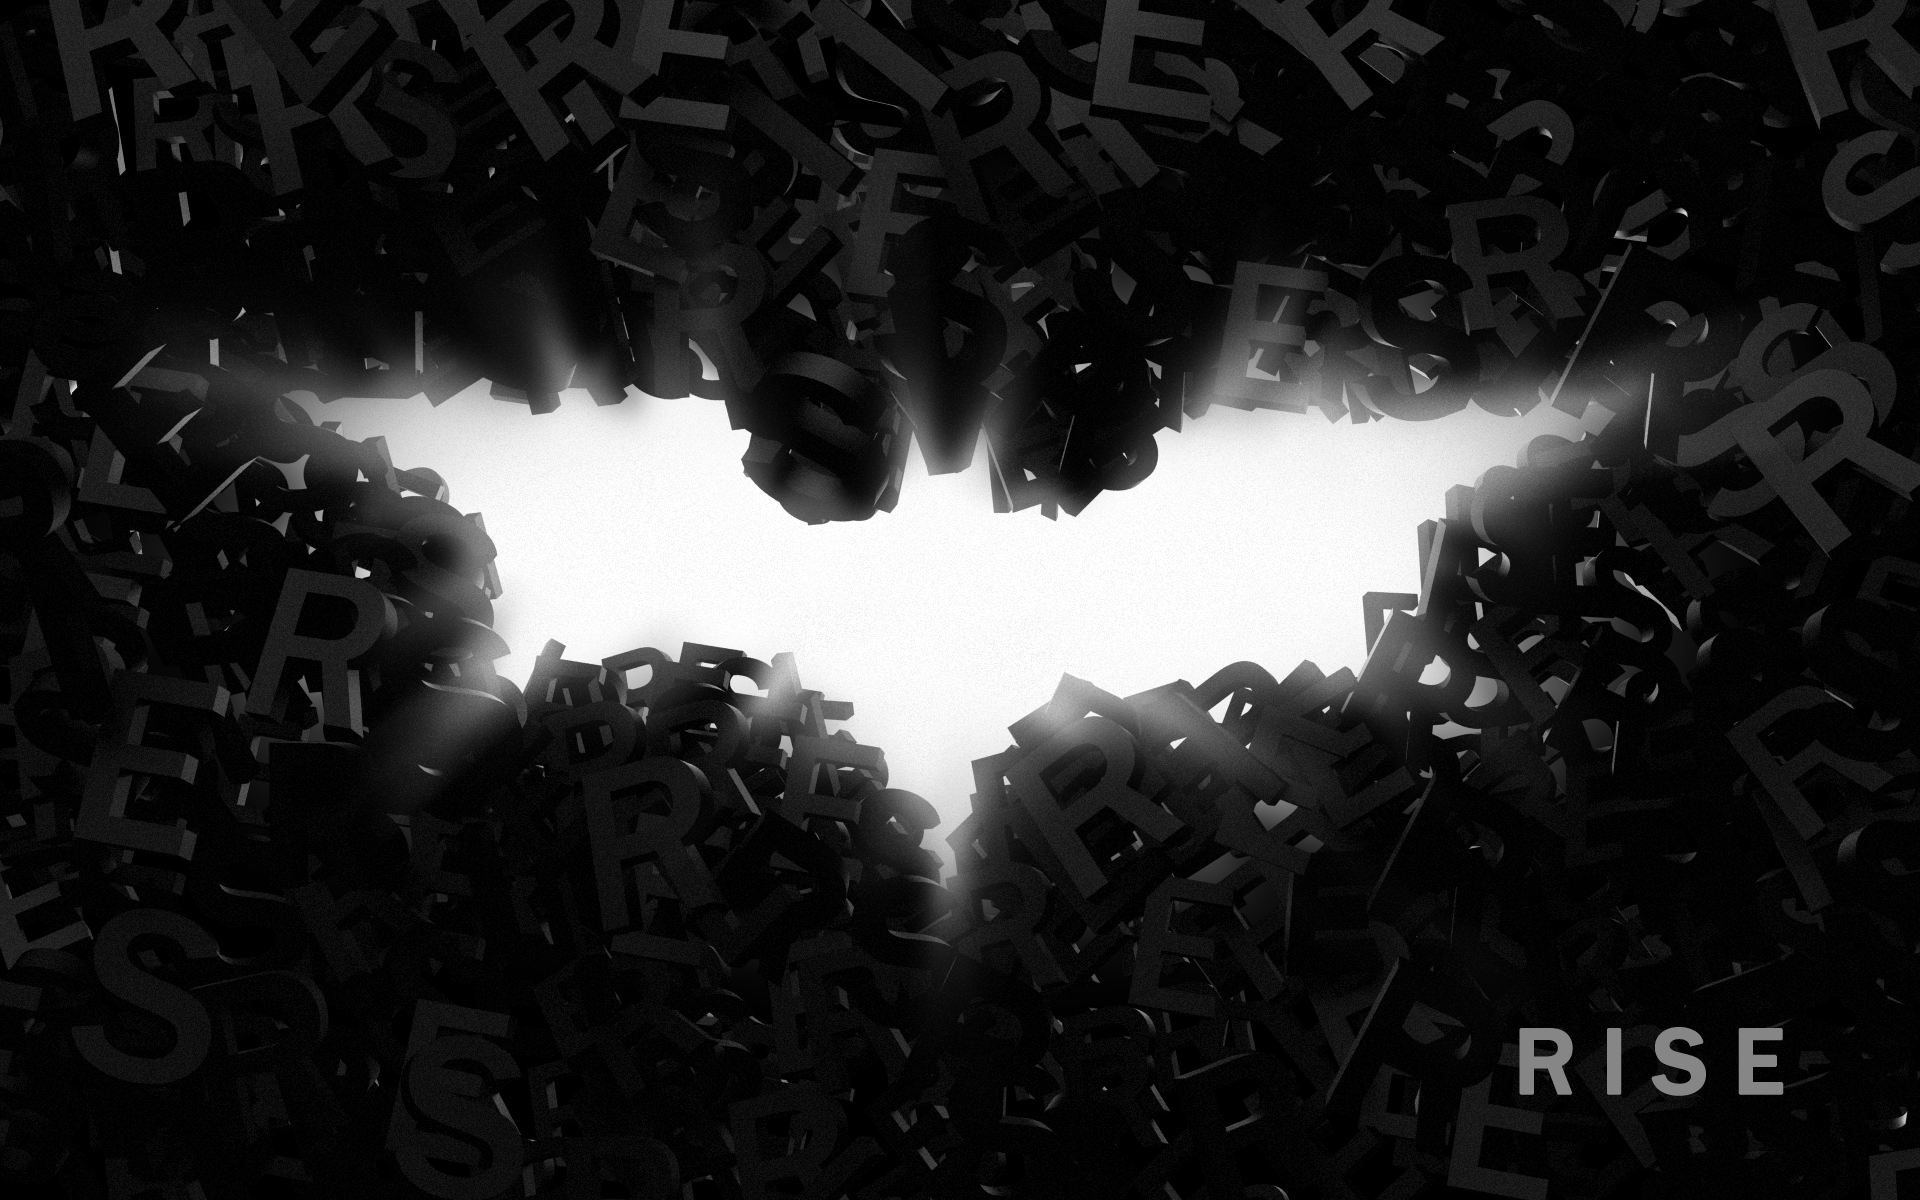 Batman The Dark Knight Rises Hd 1080P Wallpaper